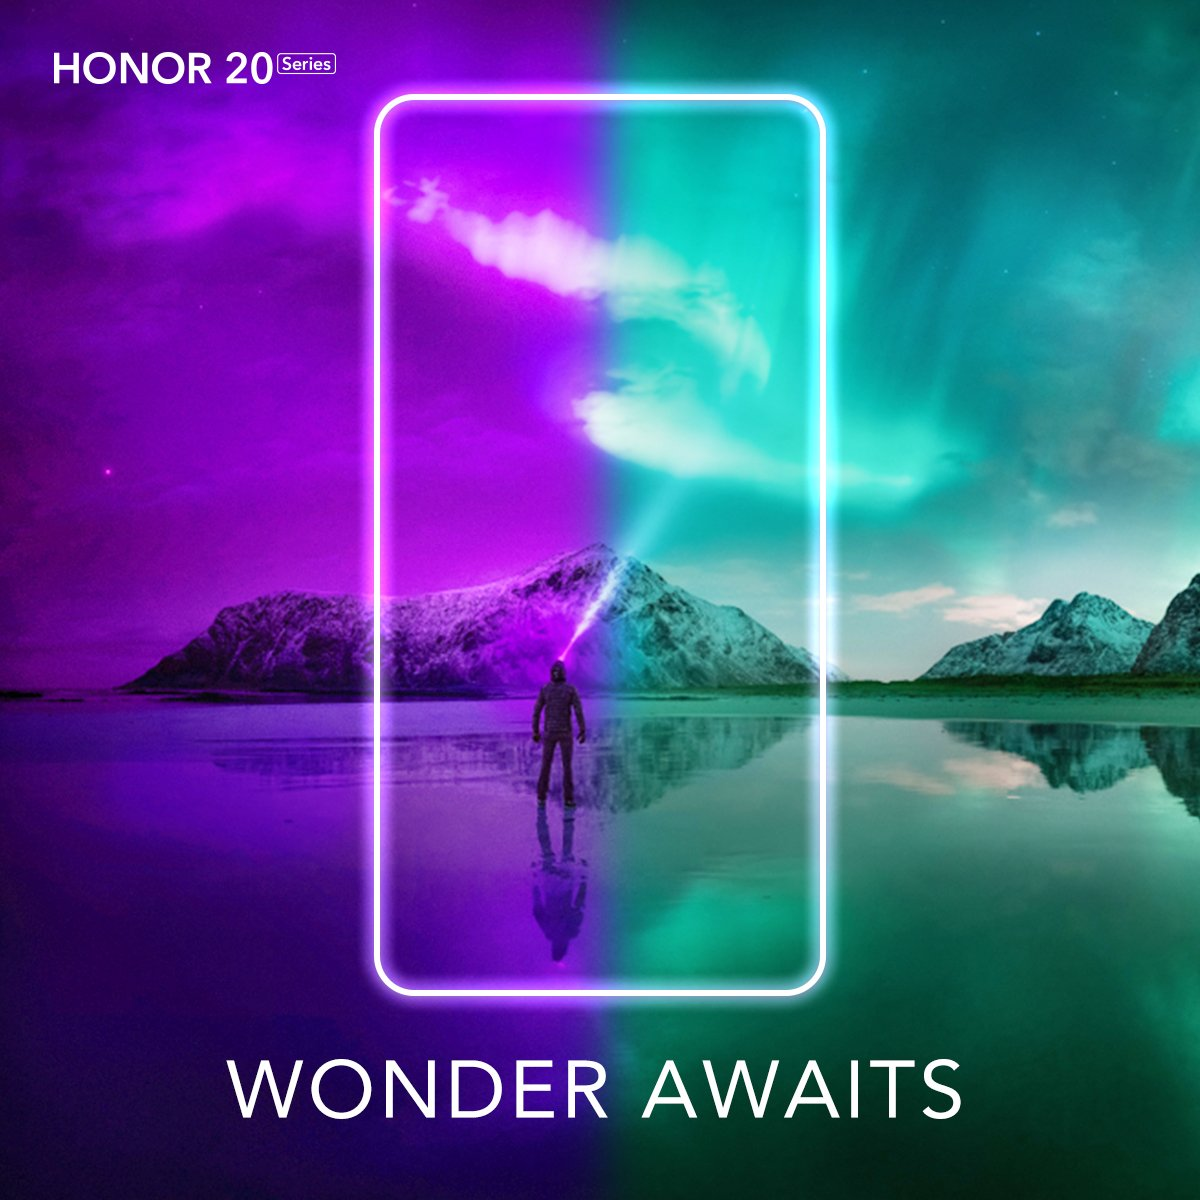 Wonder awaits on May 21st & you could be there. Reply to this tweet saying why you 💙 HONOR including #HONOR20Series & you could win tickets to the #HONOR20Series launch in London.  *The giveaway only includes travel expenses up to £35 *T&C's apply https://t.co/lQih82h4N6 https://t.co/tbPkOyEdLp